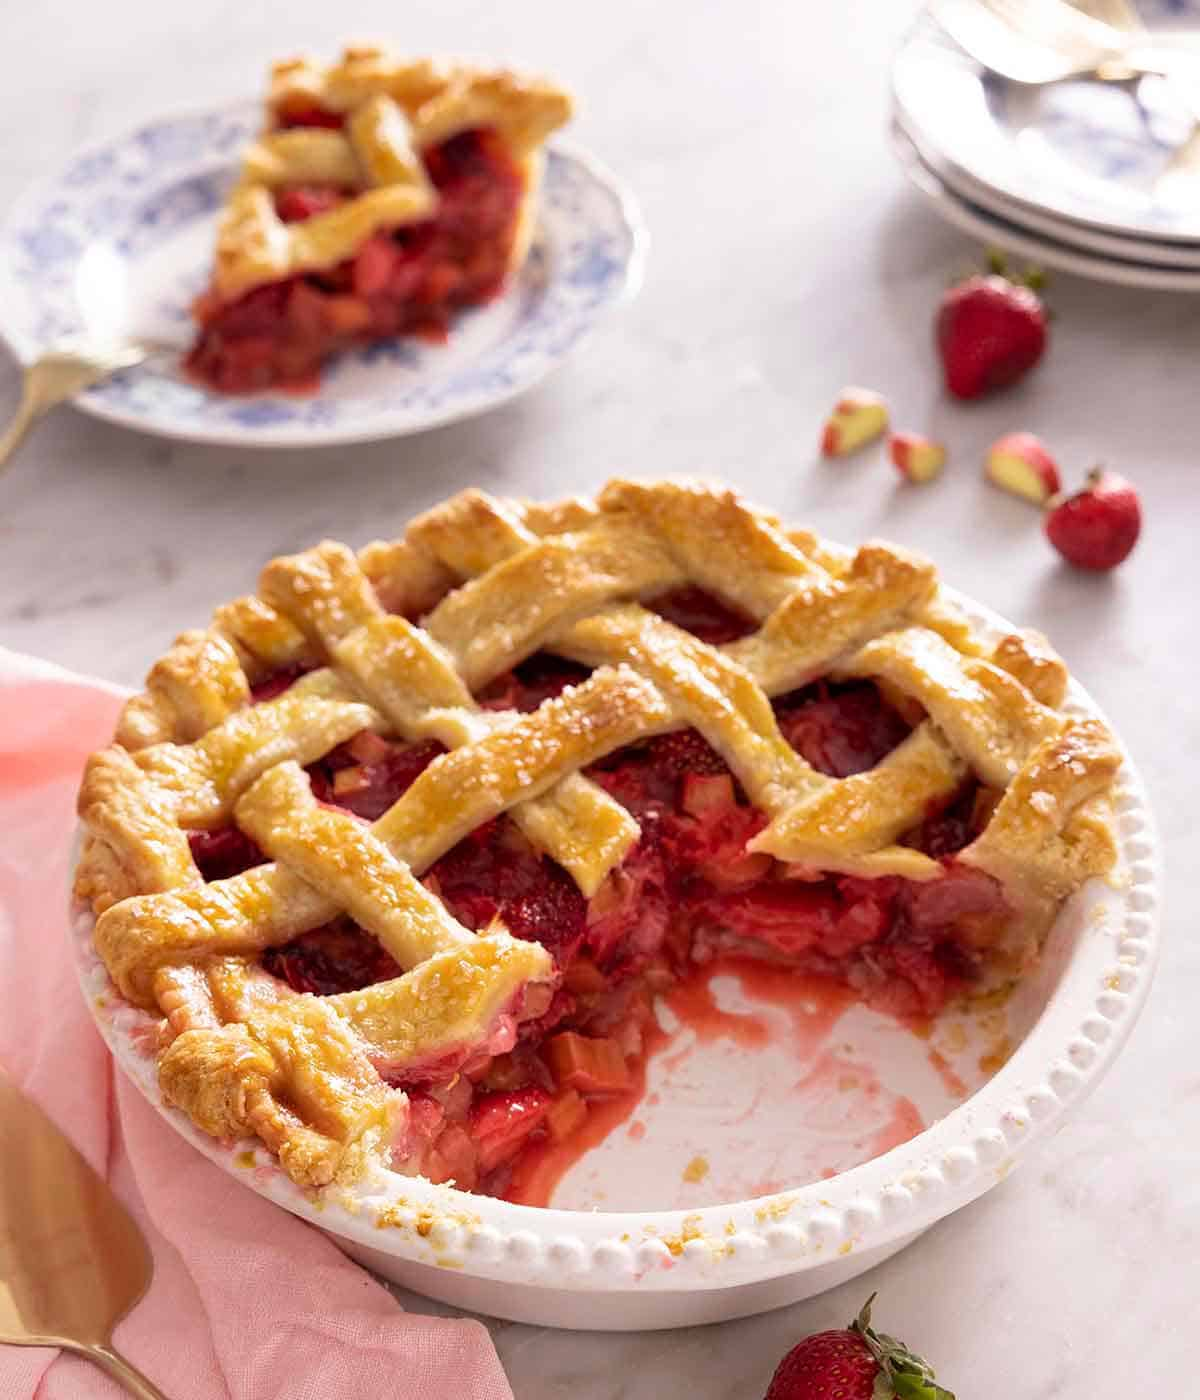 A white pie plate containing a strawberry rhubarb pie with a slice cut on, sitting on a plate in the background.